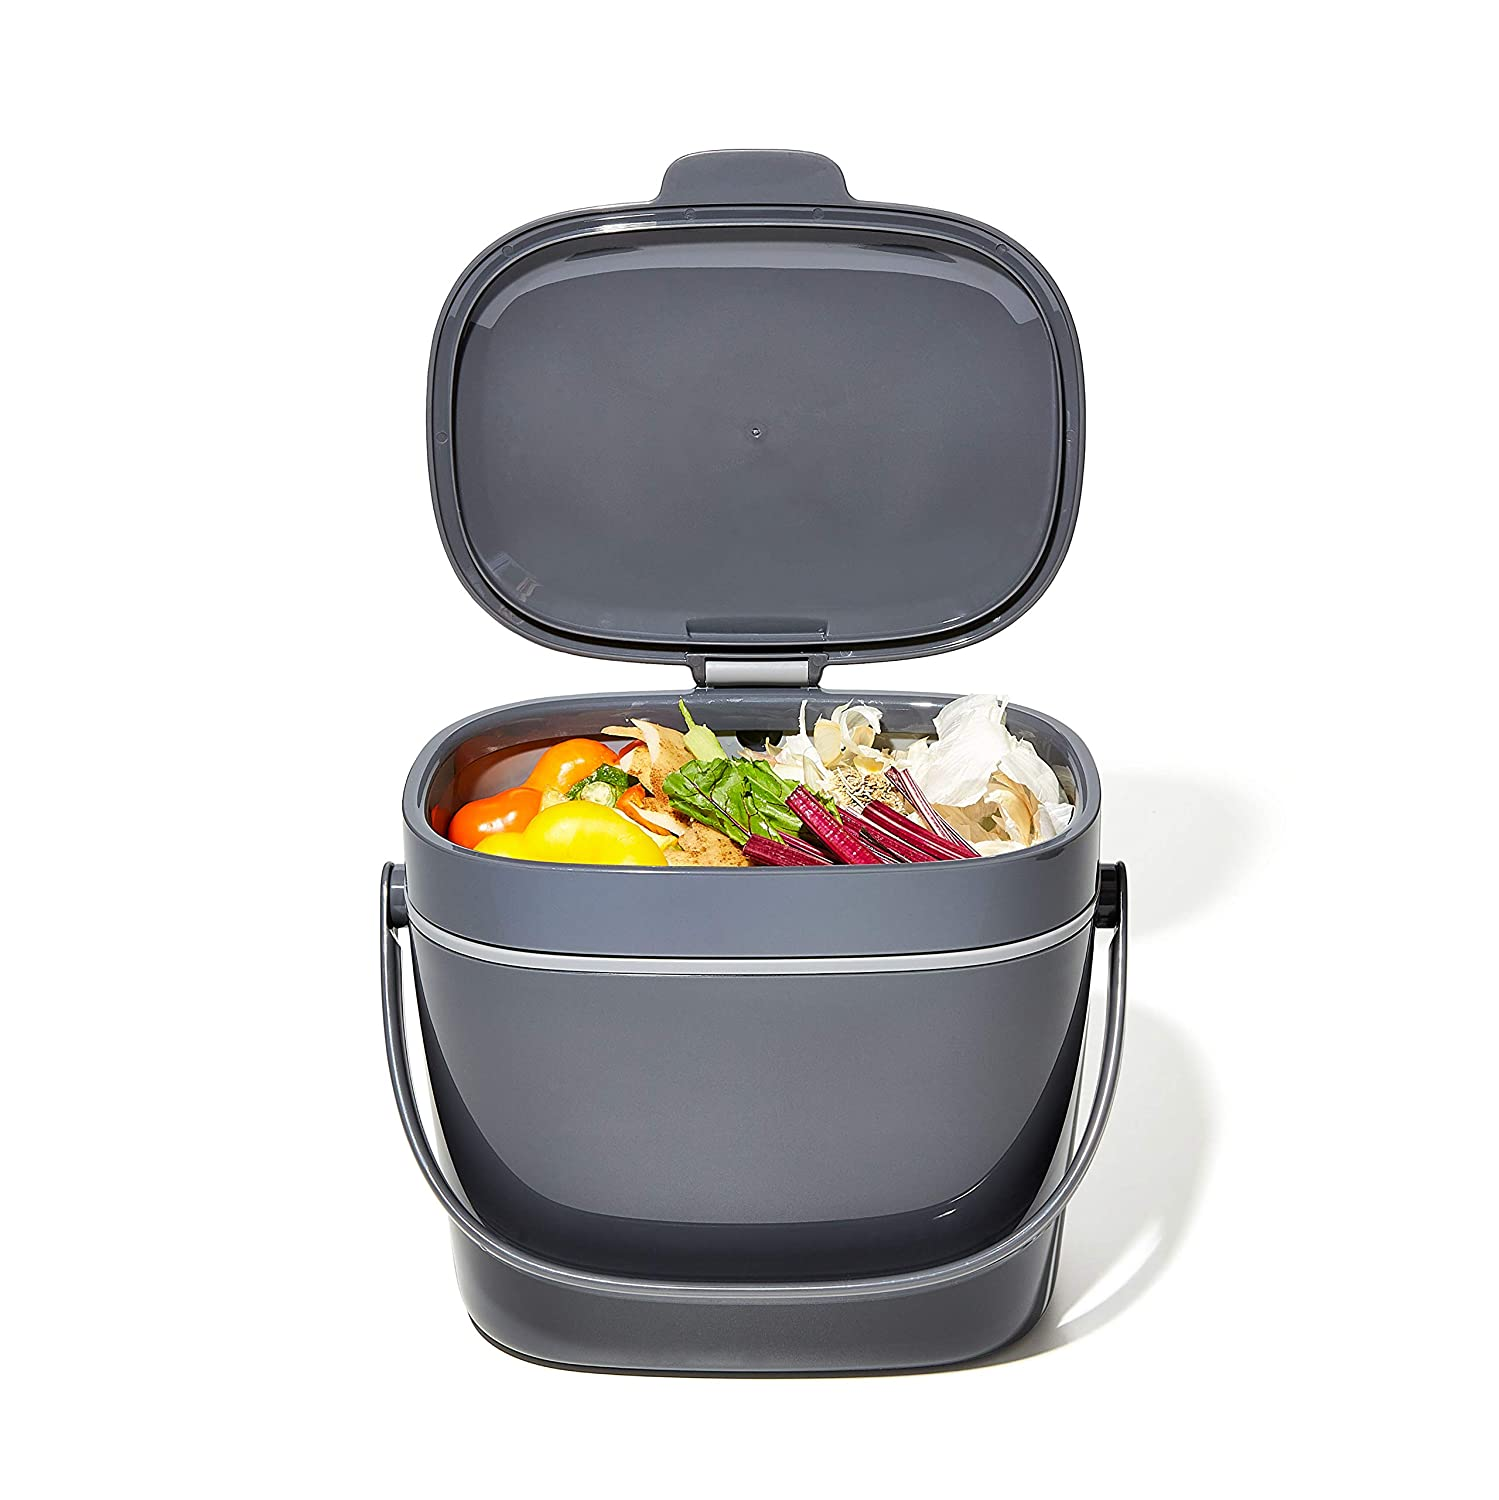 0.75 GAL//2.83 L OXO Good Grips Easy-Clean Compost Bin NEWER MODEL AVAILABLE